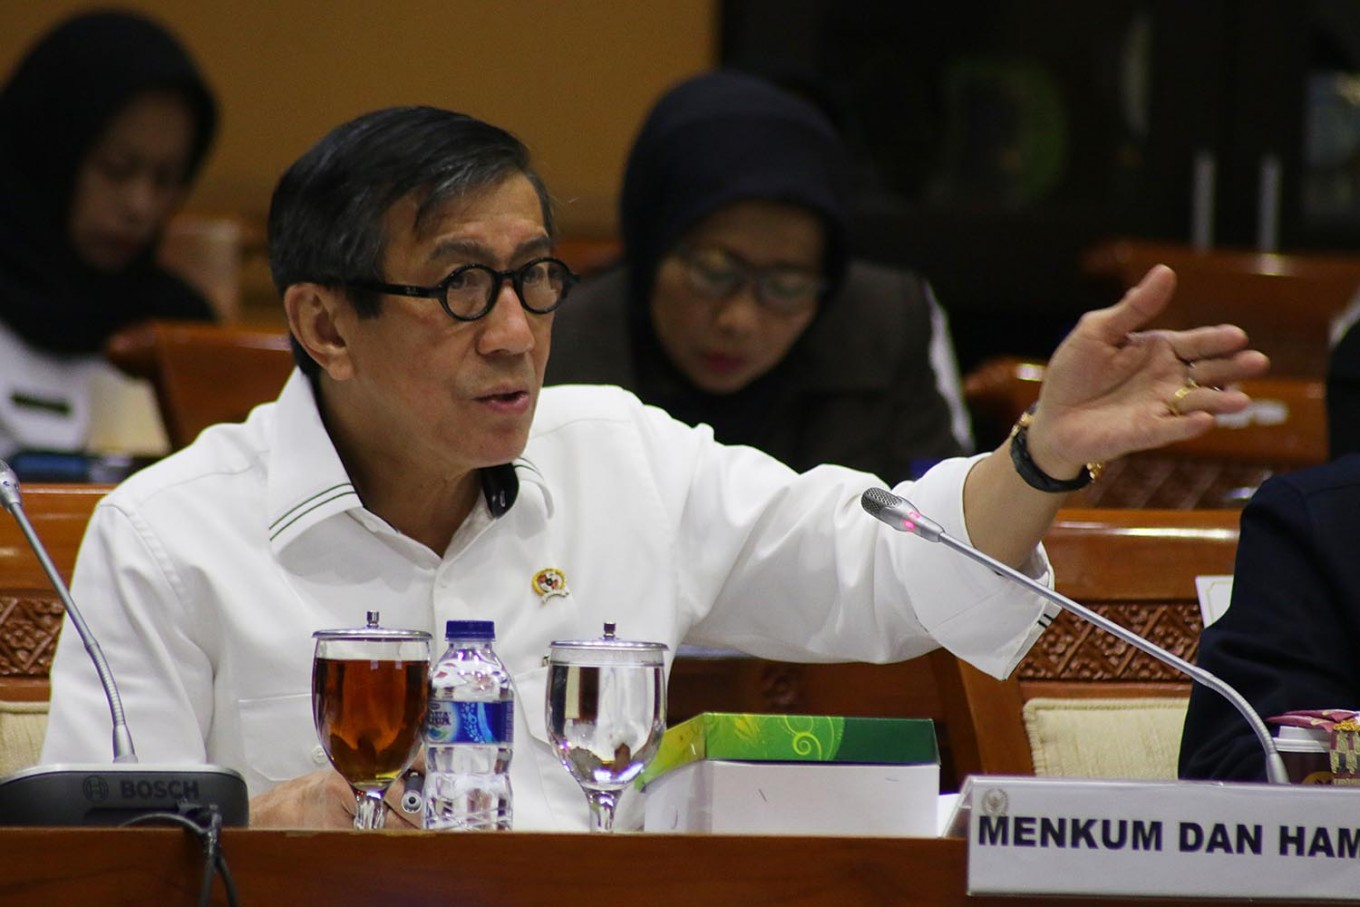 KPU cannot prohibit graft convicts from running in elections: Minister